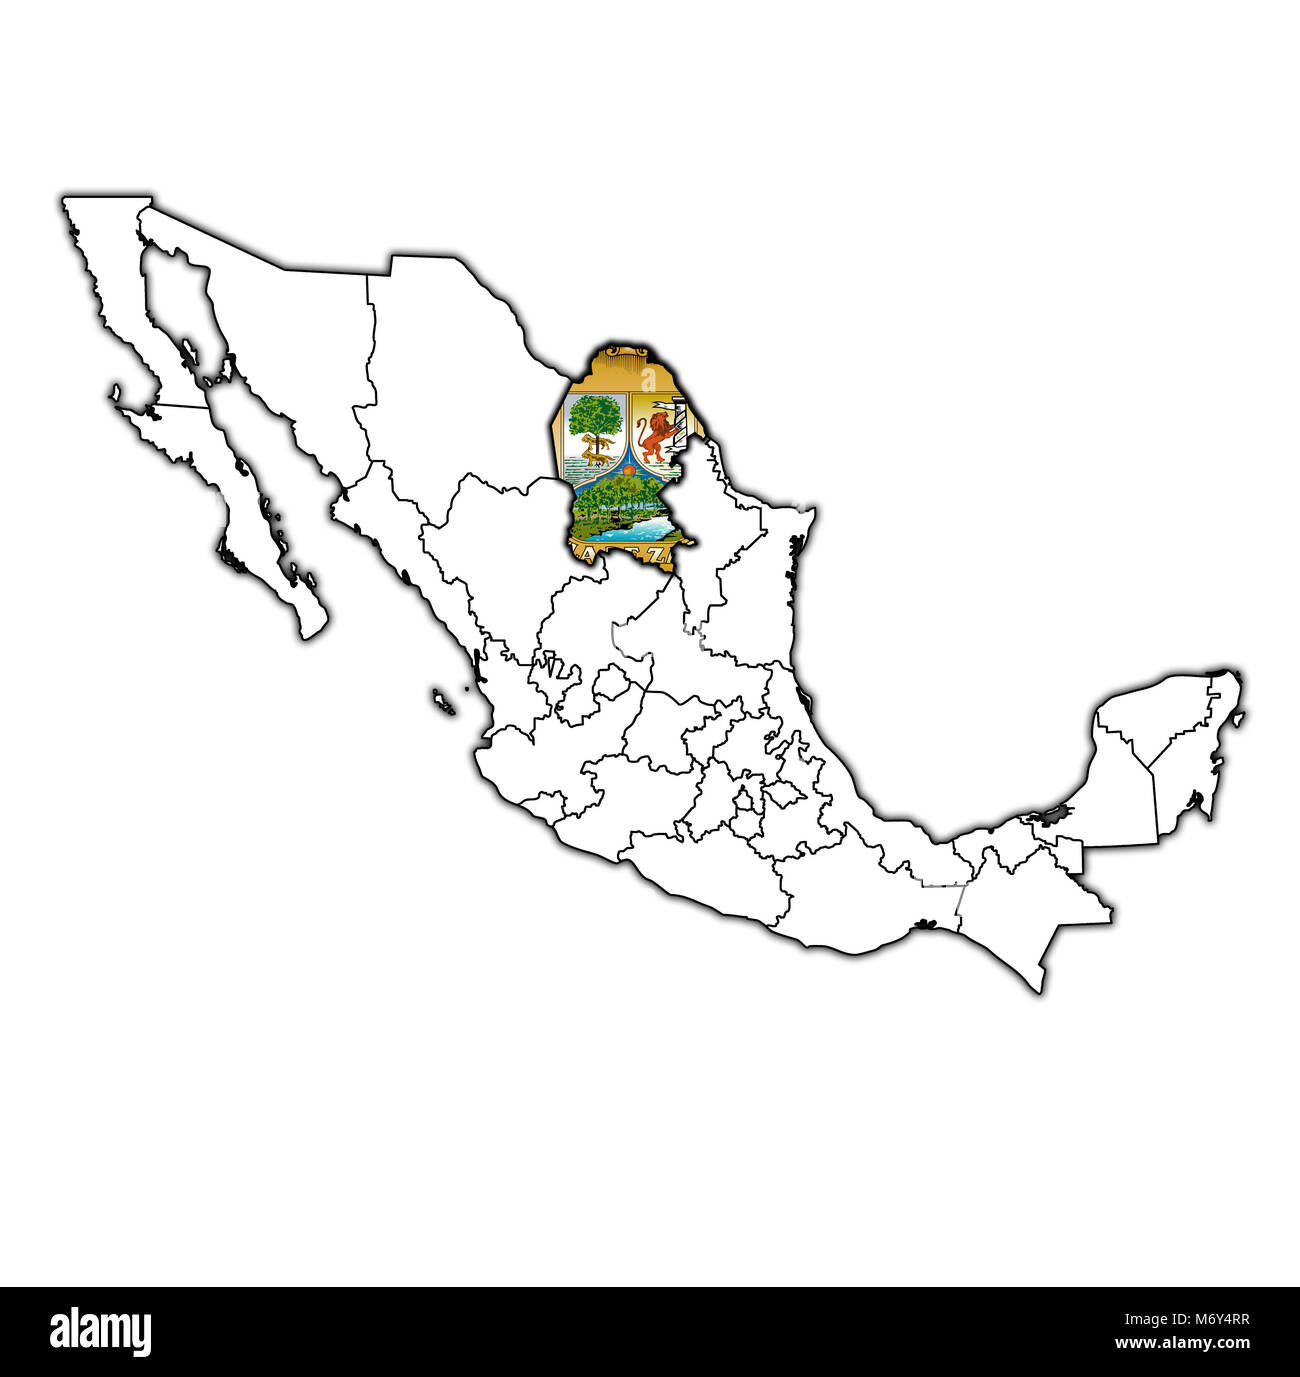 emblem of Coahuila state on map with administrative divisions and borders of Mexico - Stock Image